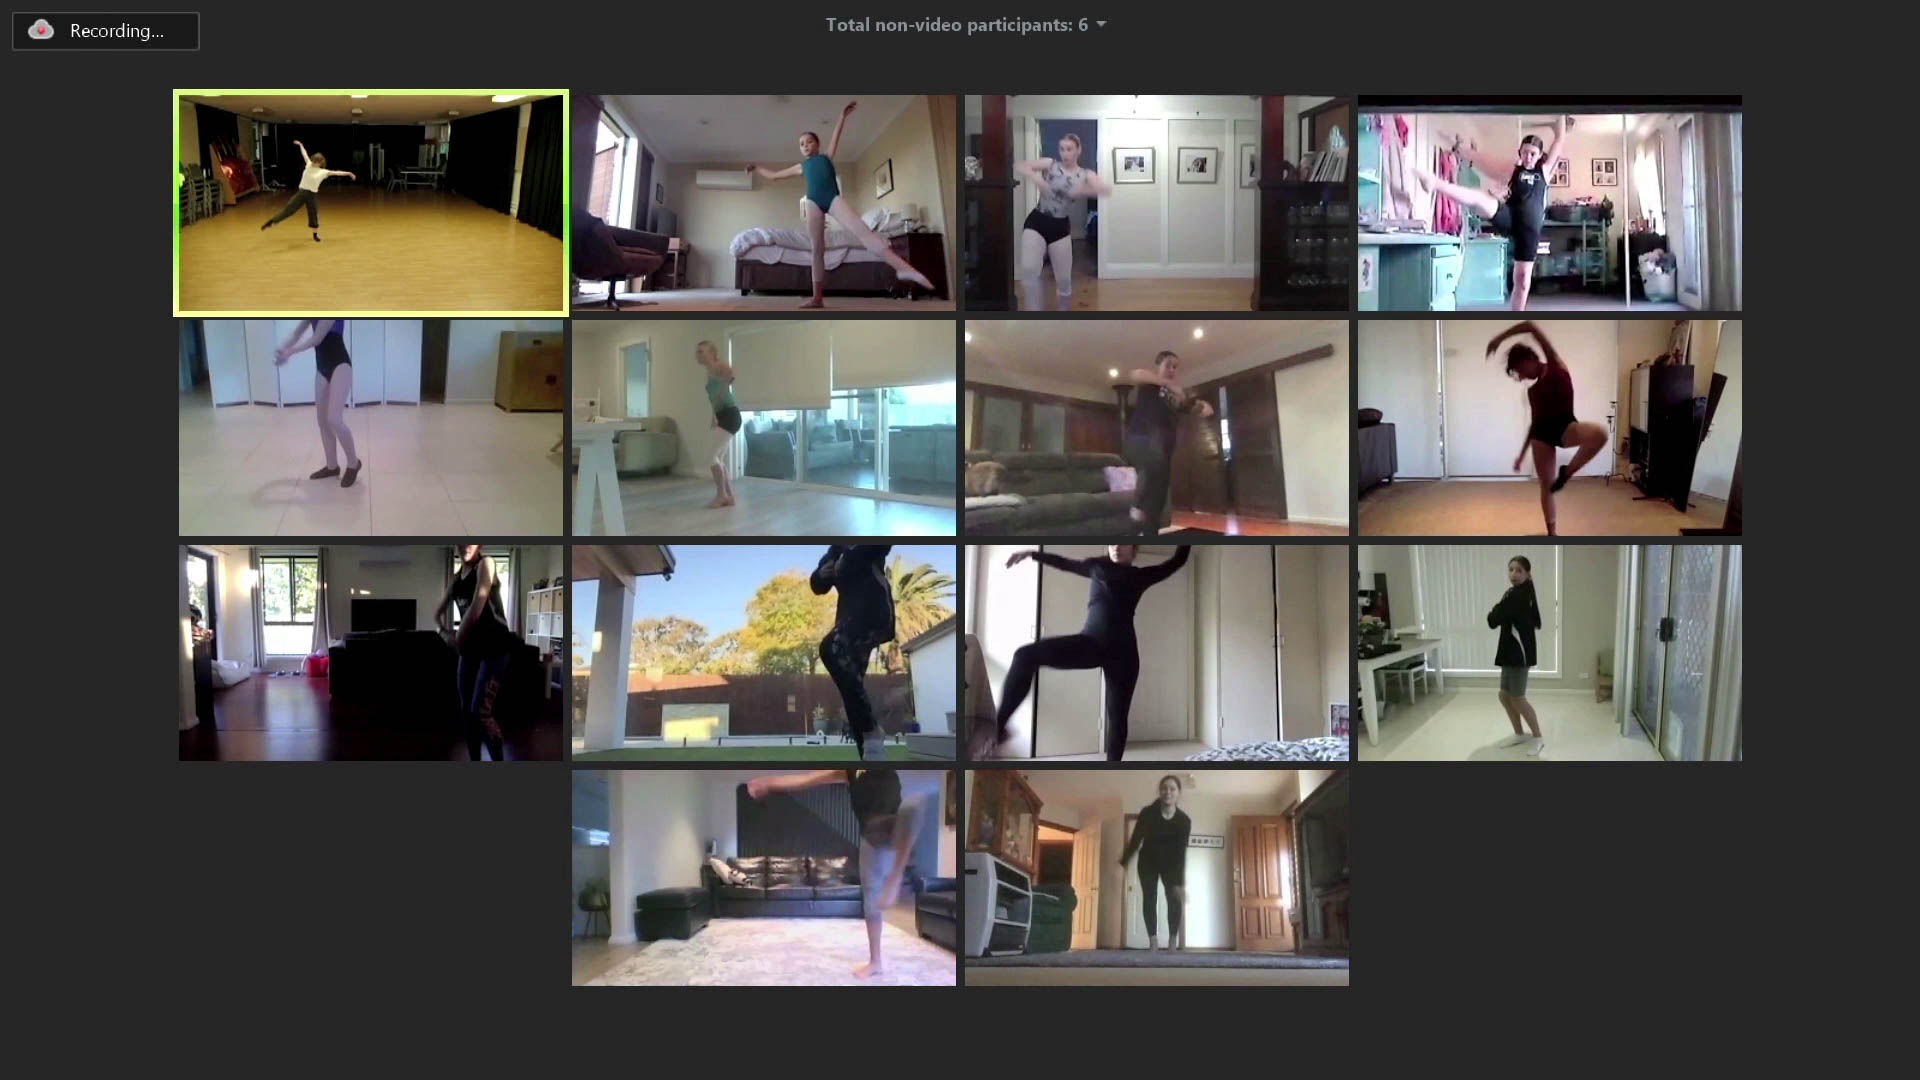 Screenshot of the virtual class, where 13 students are performing a dance with the choreographer.